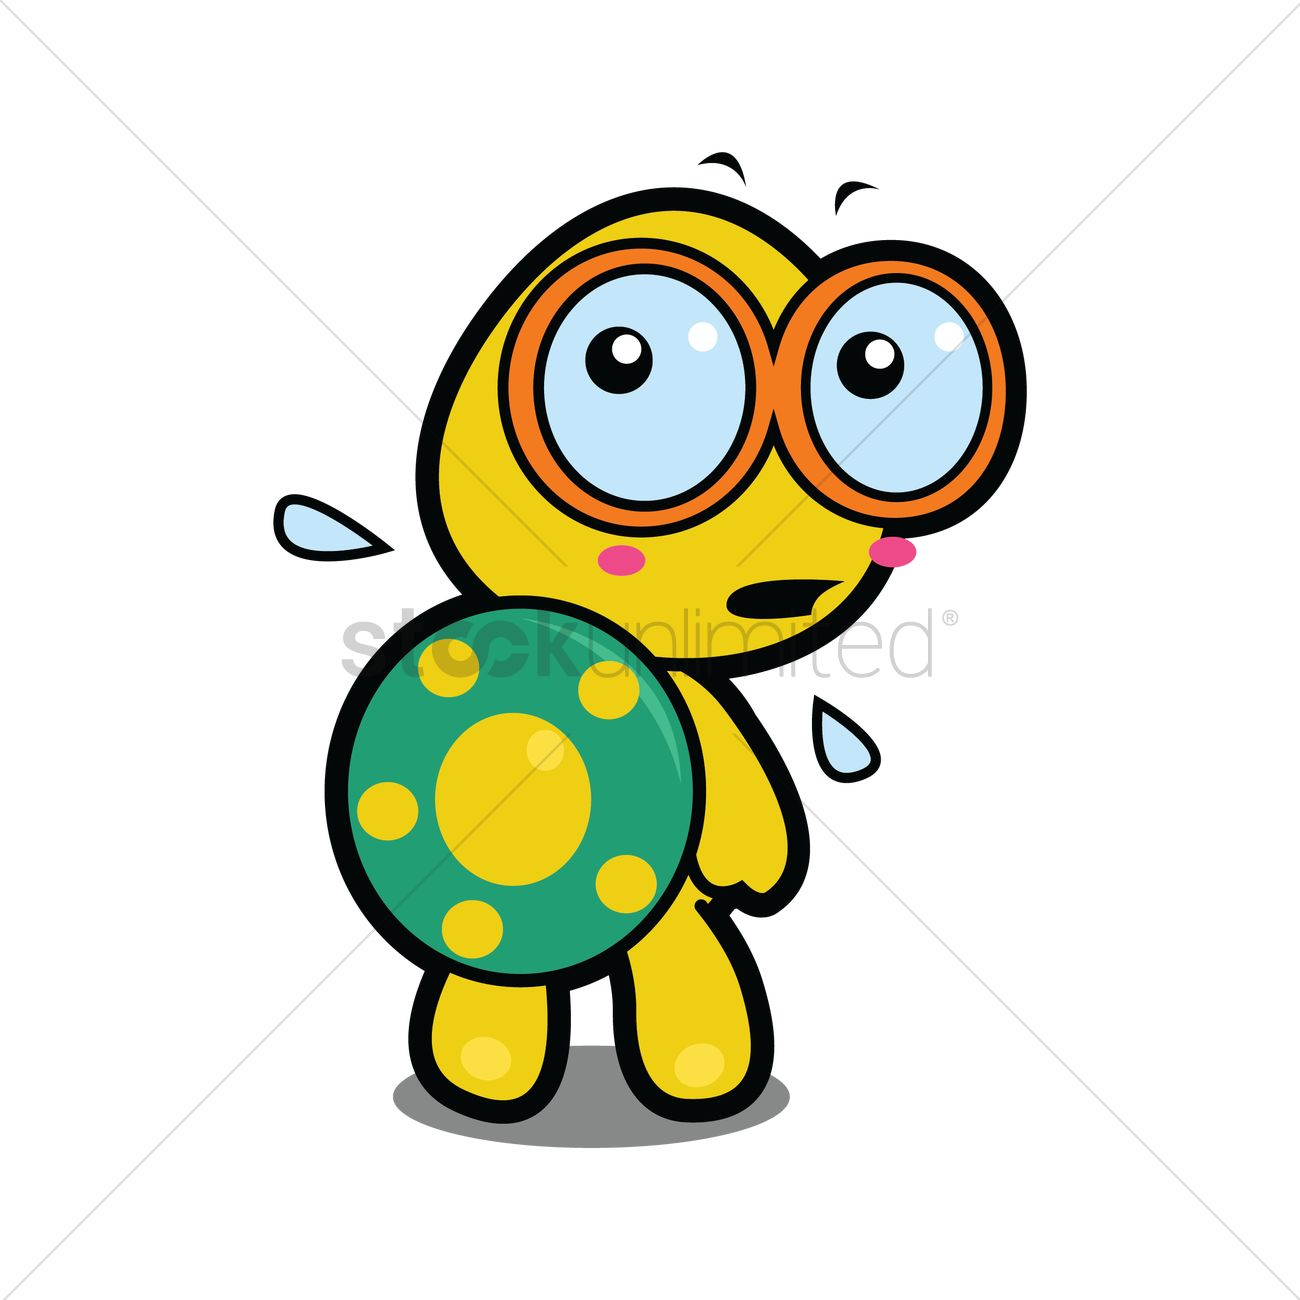 Looking back clipart graphic black and white stock Free Tortoise looking back in fear Vector Image - 1287516 ... graphic black and white stock